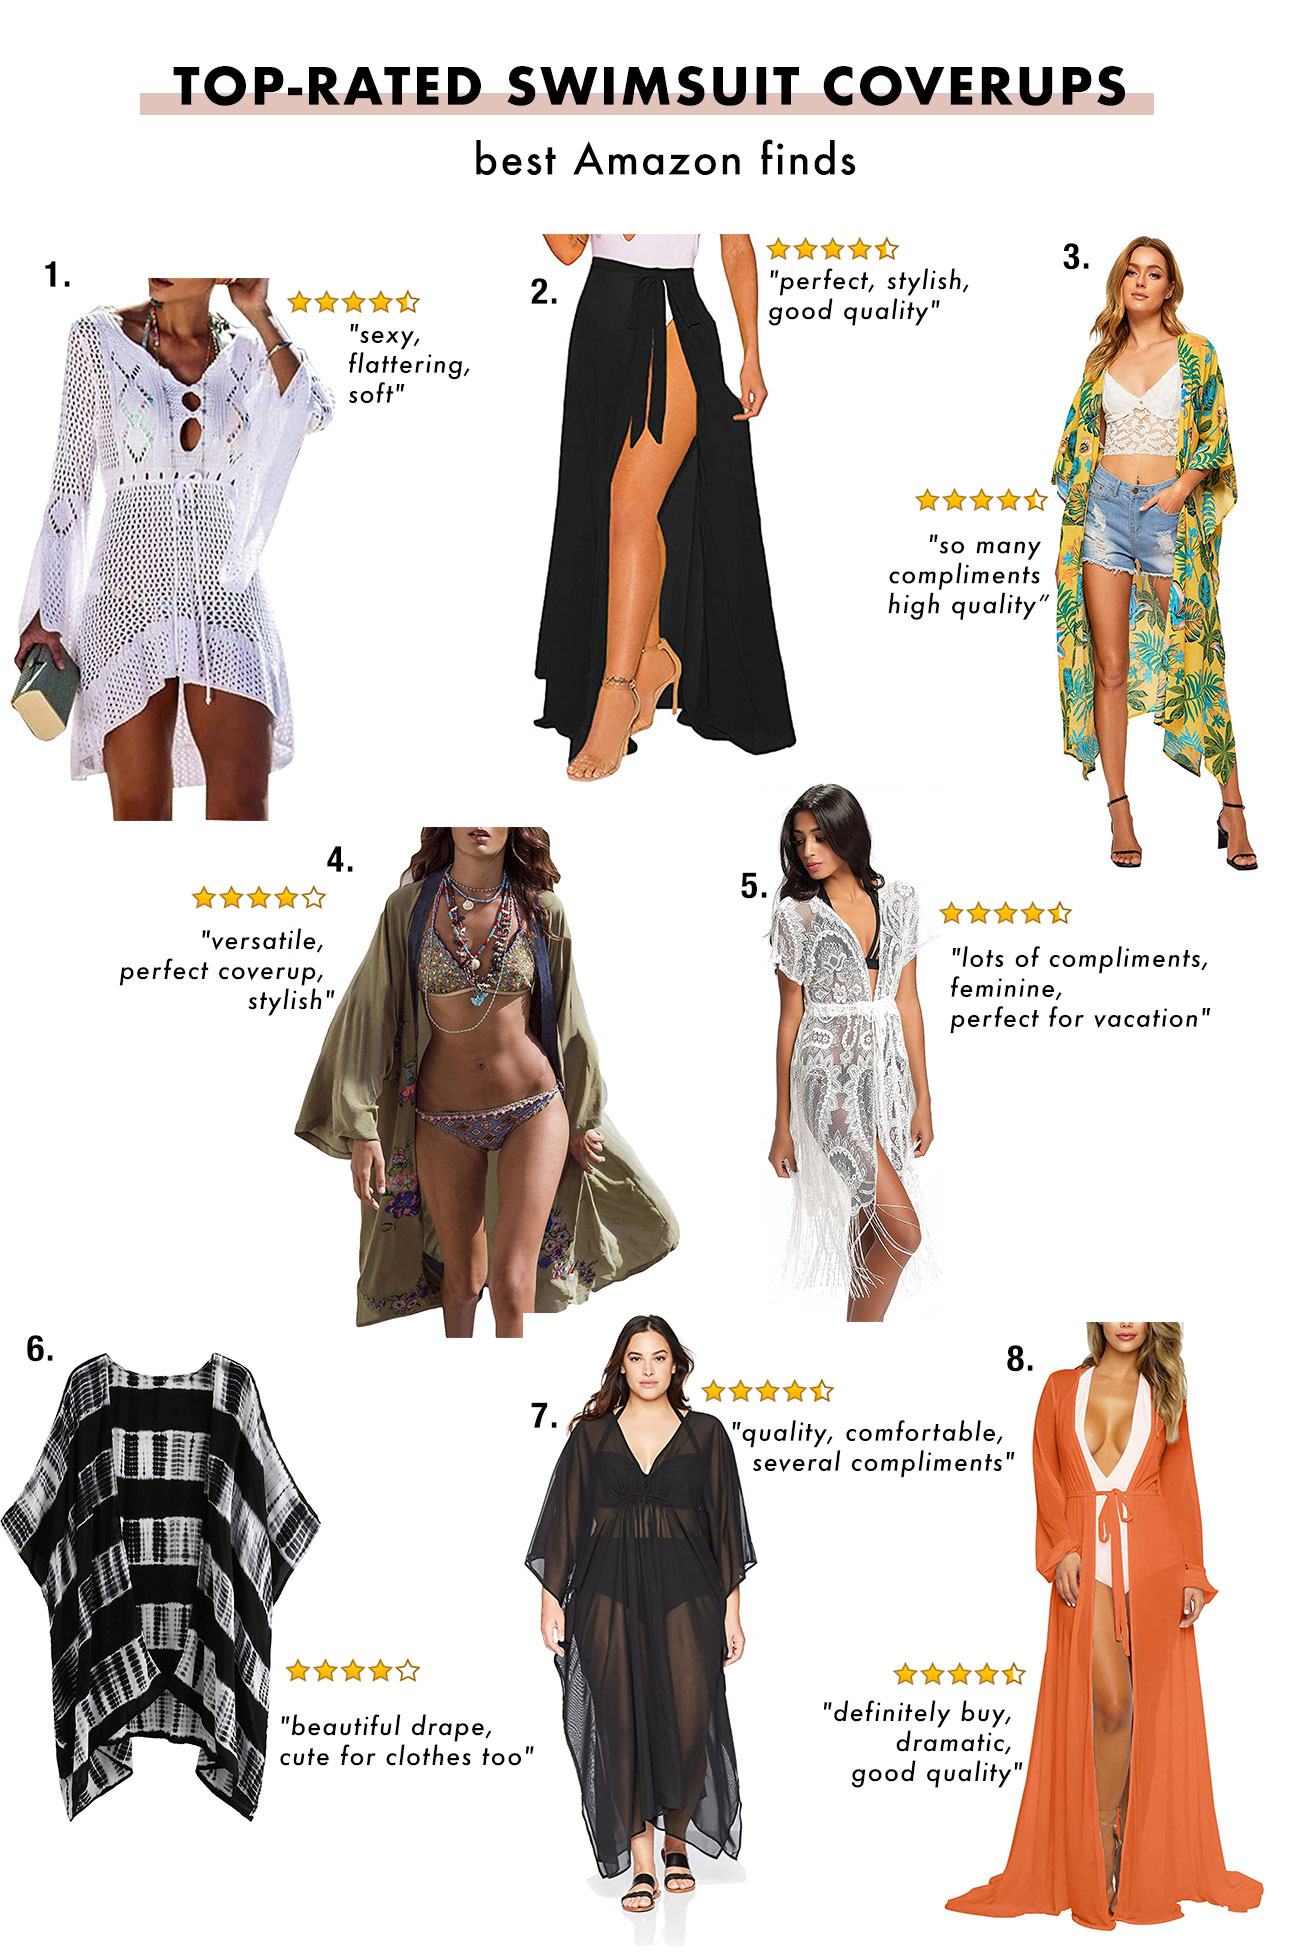 """Best swimsuit coverups at Amazon """"width ="""" 1300 """"height ="""" 1954 """"data-pin-title ="""" Best swimsuit coverups at Amazon """"data-pin-description ="""" We found the best rated swimsuit coverups at Amazon ! """"Srcset ="""" https://greenweddingshoes.com/wp-content/uploads/2020/07/Amazon-swimsuits-2.jpg 1300w, https://i0.wp.com/greenweddingshoes.com/wp-content/uploads / 2020/07 / Amazon swimsuits-2.jpg? Resize = 200.300 200w, https://i0.wp.com/greenweddingshoes.com/wp-content/uploads/2020/07/Amazon-swimsuits-2.jpg?resize=681, 1024 681w, https: // i0. wp.com/greenweddingshoes.com/wp-content/uploads/2020/07/Amazon-swimsuits-2.jpg?resize=768,1154 768w, https: //i0.wp .com / greenweddingshoes.com / wp-content / uploads / 2020/07 / Amazon swimsuits-2.jpg? resize = 337.506 337w, https://i0.wp.com/greenweddingshoes.com/wp-content/uploads/ 2020/07 / Amazon-Badeanzüge-2.jpg? Resize = 800.1202 800w, https://i0.wp.com/greenweddingshoes.com/wp-content/uploads/2020/07/Amazon-swimsuits-2.jpg? resize = 400,601 400w, https://i0.wp.com/greenweddingshoes.com/wp-content /uploads/2020/07/Amazon-swimsuits-2.jpg?resize=1022,1536 1022w, https: // i0. wp.com/greenweddingshoes.com/wp-content/uploads/2020/07/Amazon-swimsuits- 2.jpg? Resize = 300,451 300w """"Sizes ="""" (maximum width: 1300px) 100vw, 1300px """"/> 1. Net Bikini Cover-Up $ 19.99 // 2. Wrap Skirt Swimsuit Cover-Up $ 11.87 - $ 25.99 // 3. Kimono Maxi Dress $ 13.99 - $ 23.99 // 4th Chiffon Long Kimono Beach Blouse $ 23.99 // 5th Floral Lace Cover-Up $ 12.99 - $ 18.98 // 6th Kimono Beach Cover-Up $ 14.99 - $ 23.99 // 7th Long Black Beach Cover-Up $ 12.89 - $ 55.00 // 8.Long sleeve maxi swimsuit robe $ 19.99 - $ 25.88</p> <h4 style="""